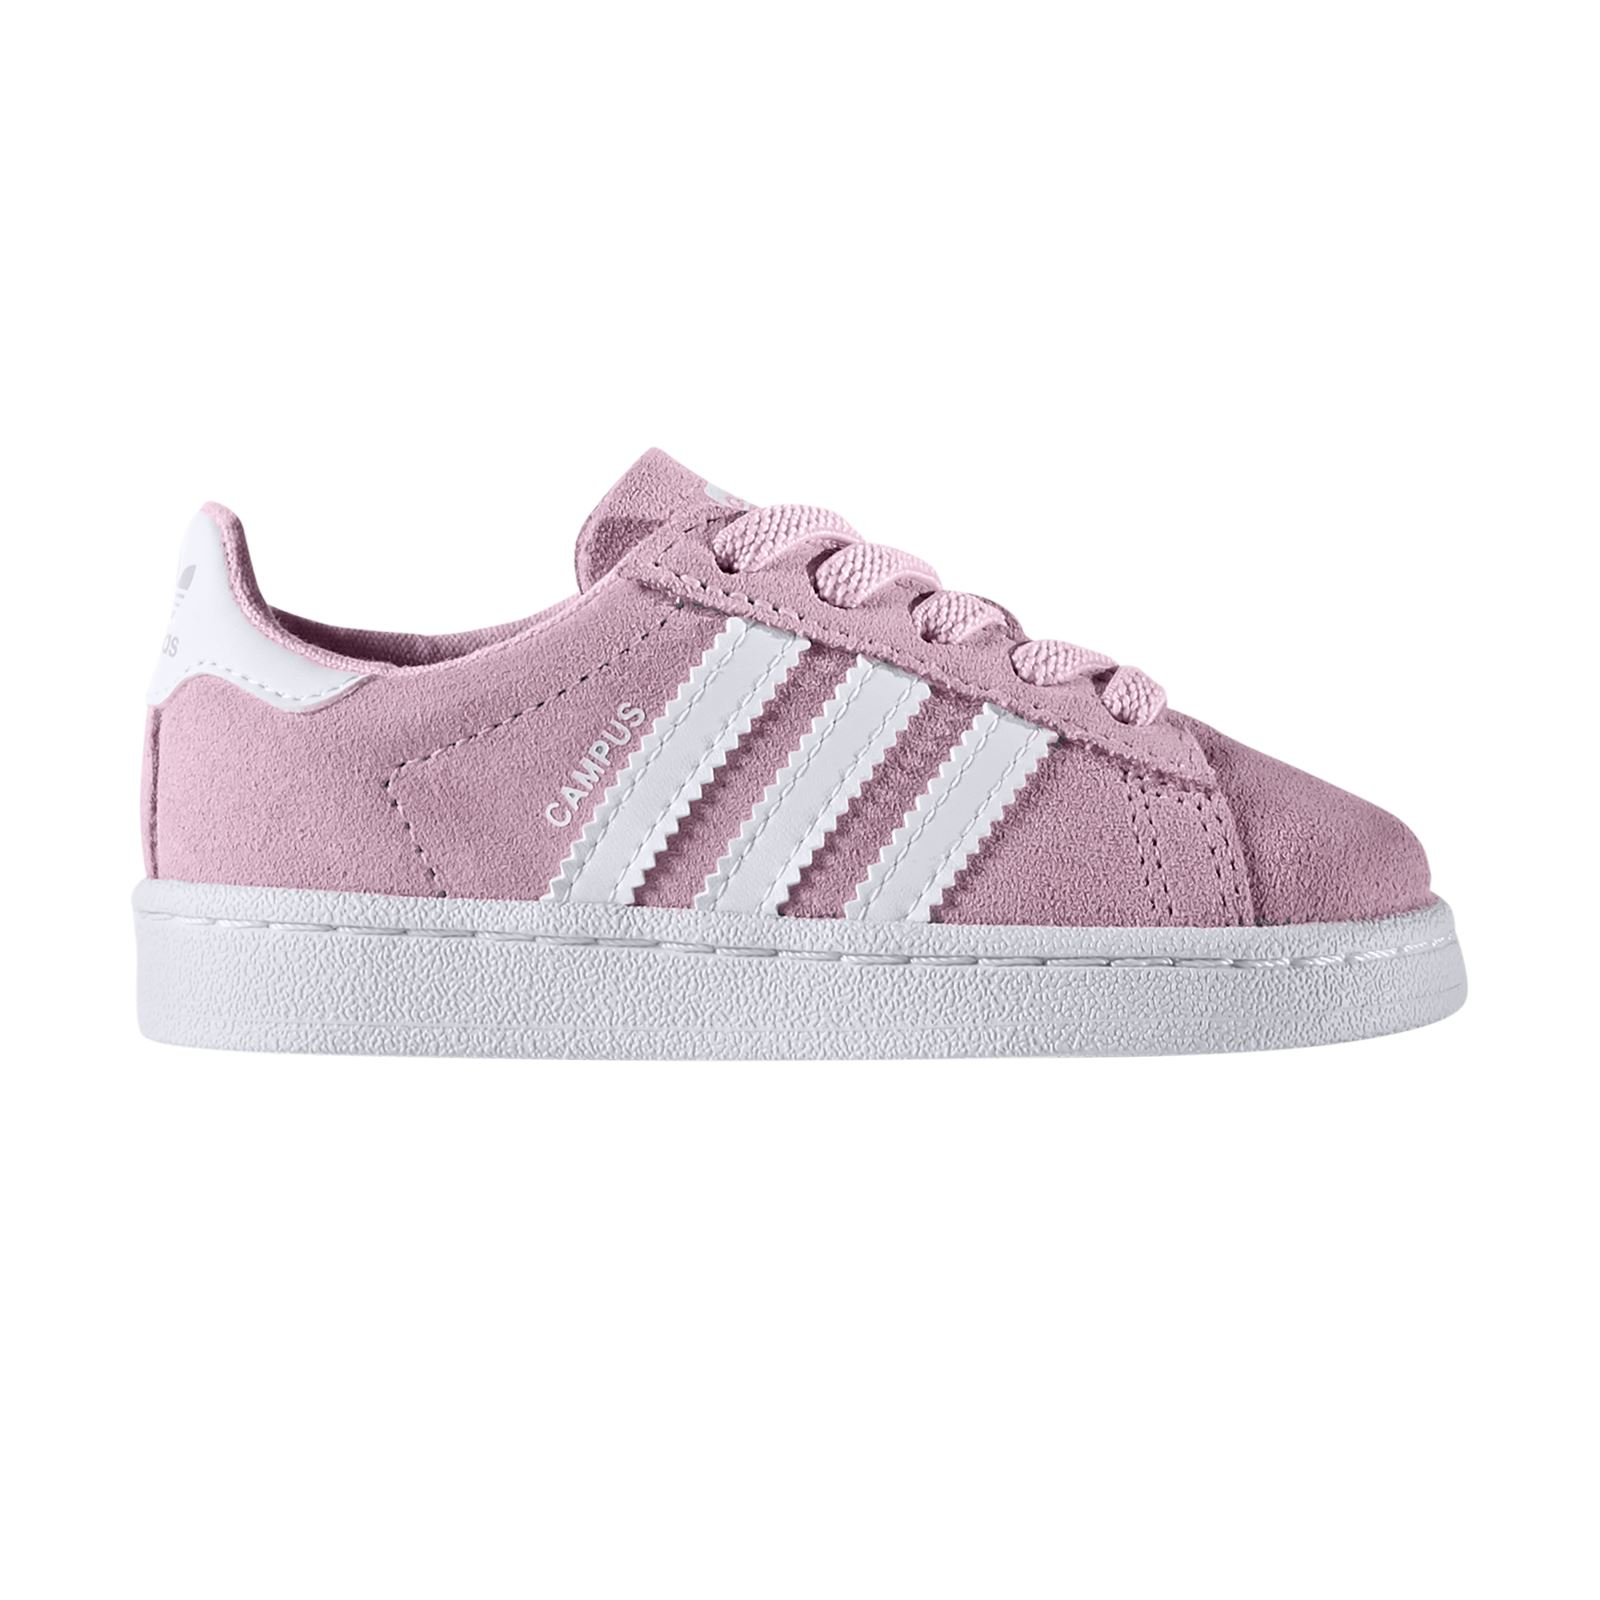 adidas originals campus ledersneakers rosa brandalley. Black Bedroom Furniture Sets. Home Design Ideas